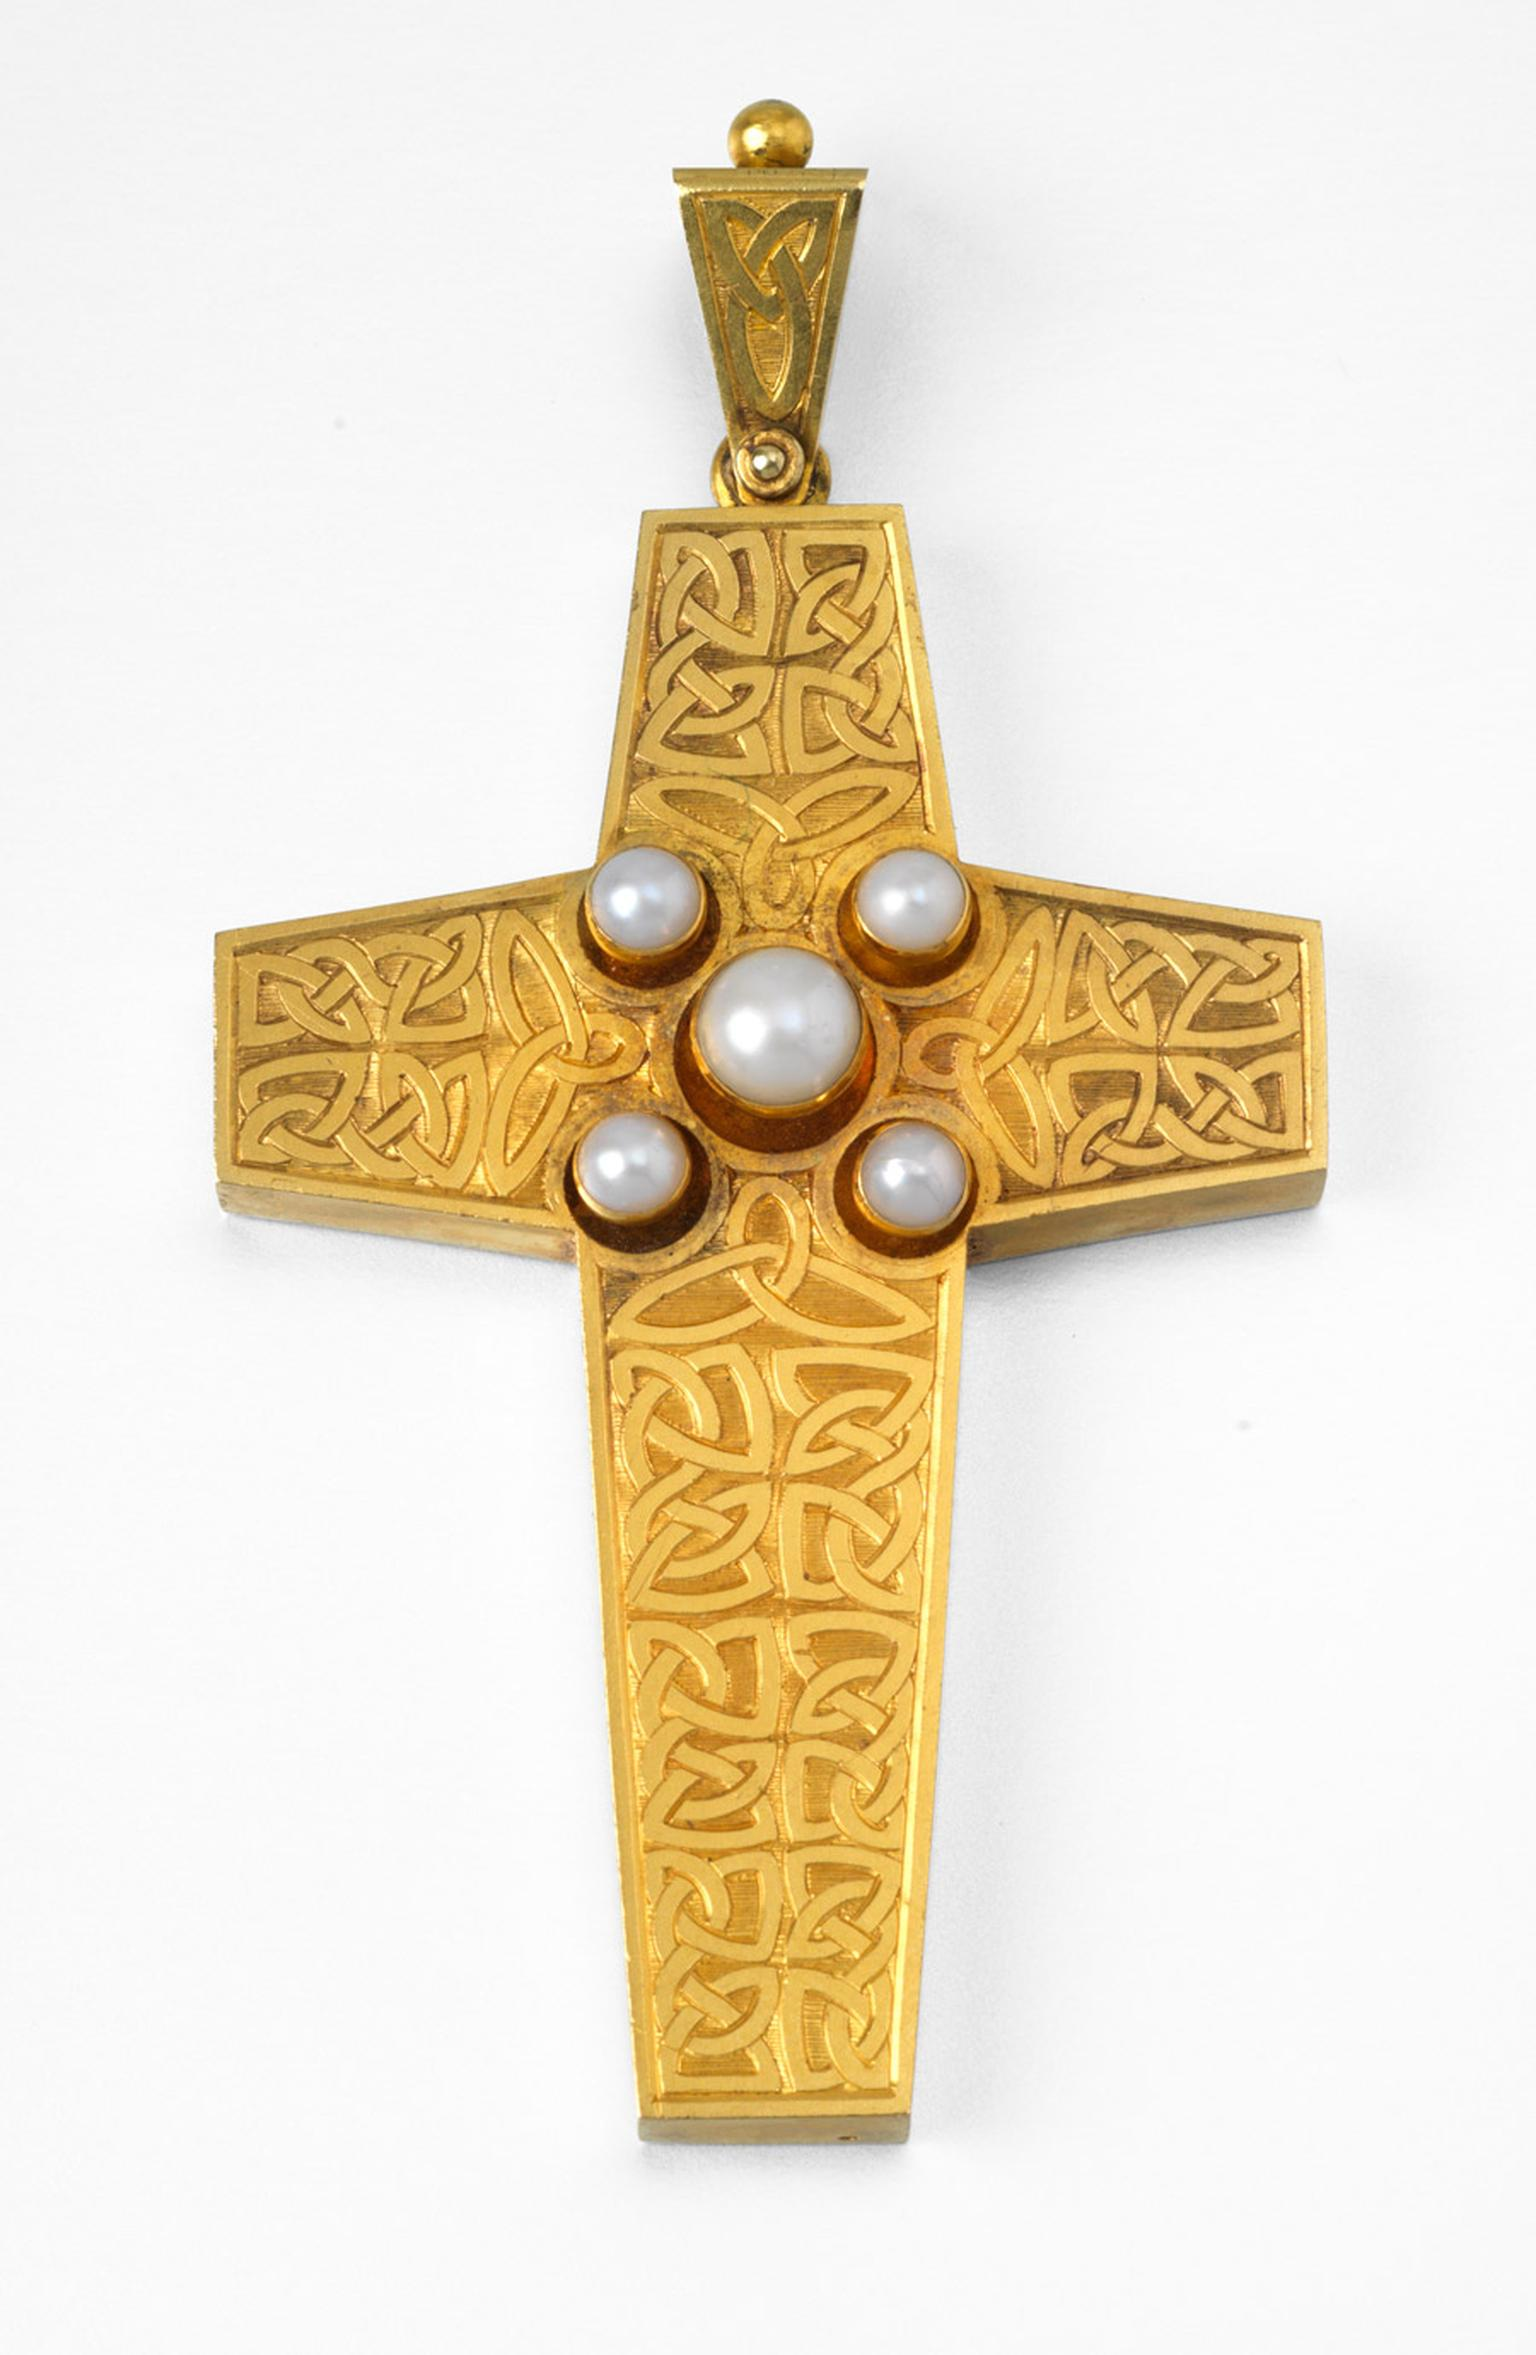 Goldsmiths-1c-Kildonan-Cross.jpg